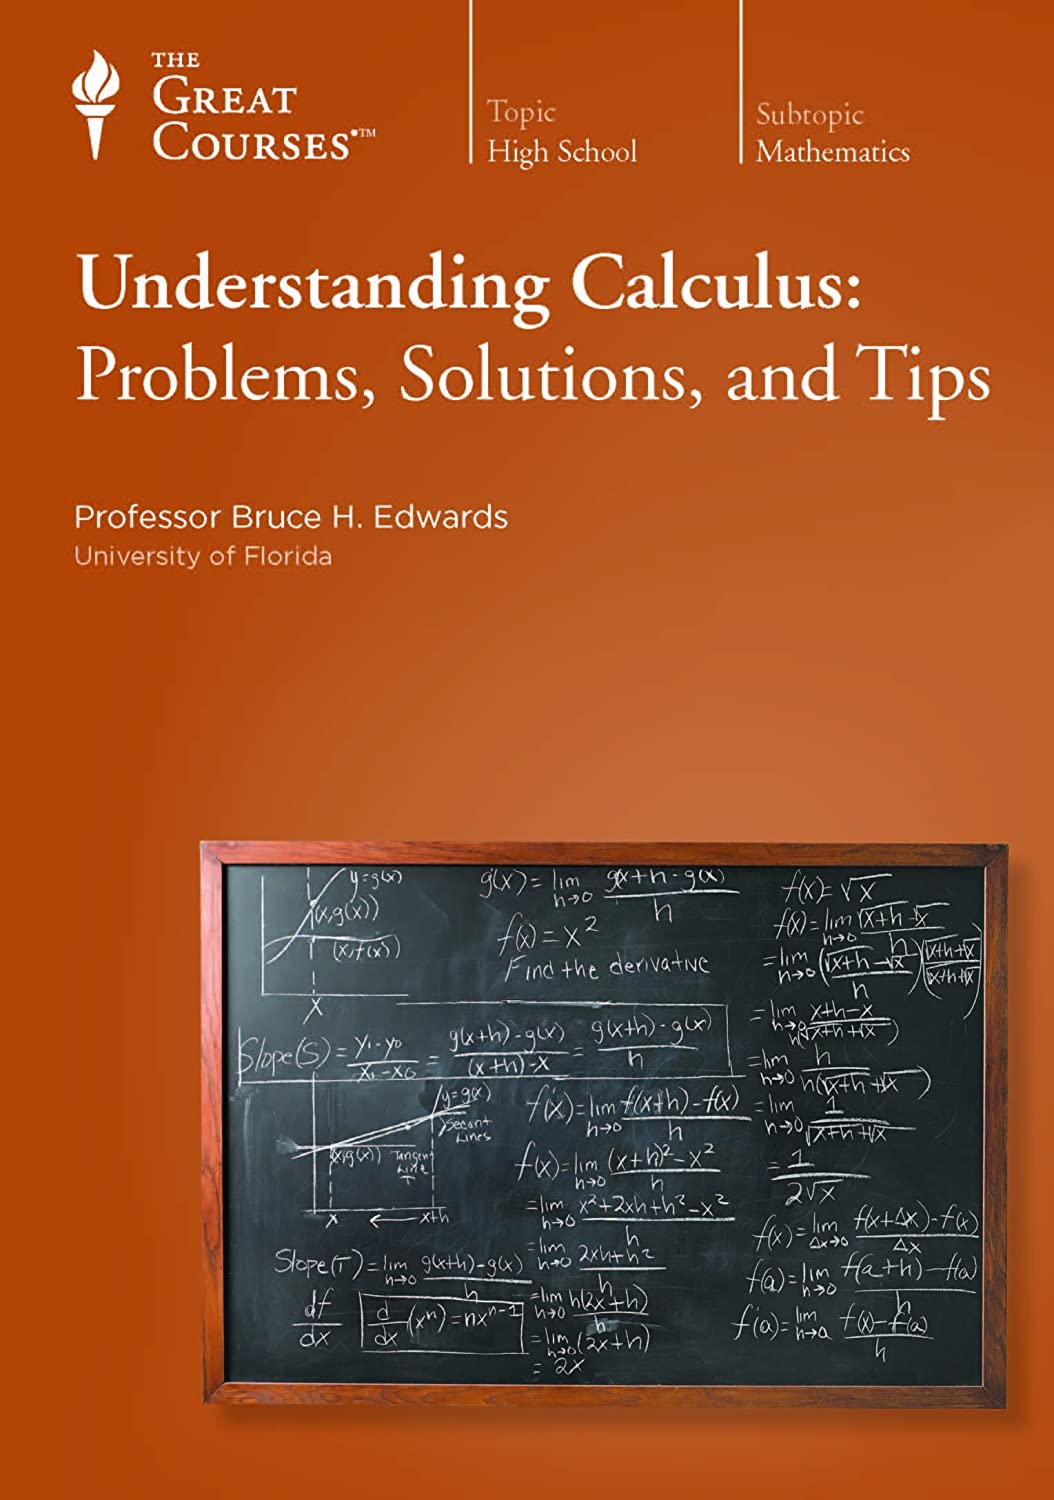 TTC - Understanding Calculus: Problems, Solutions, and Tips